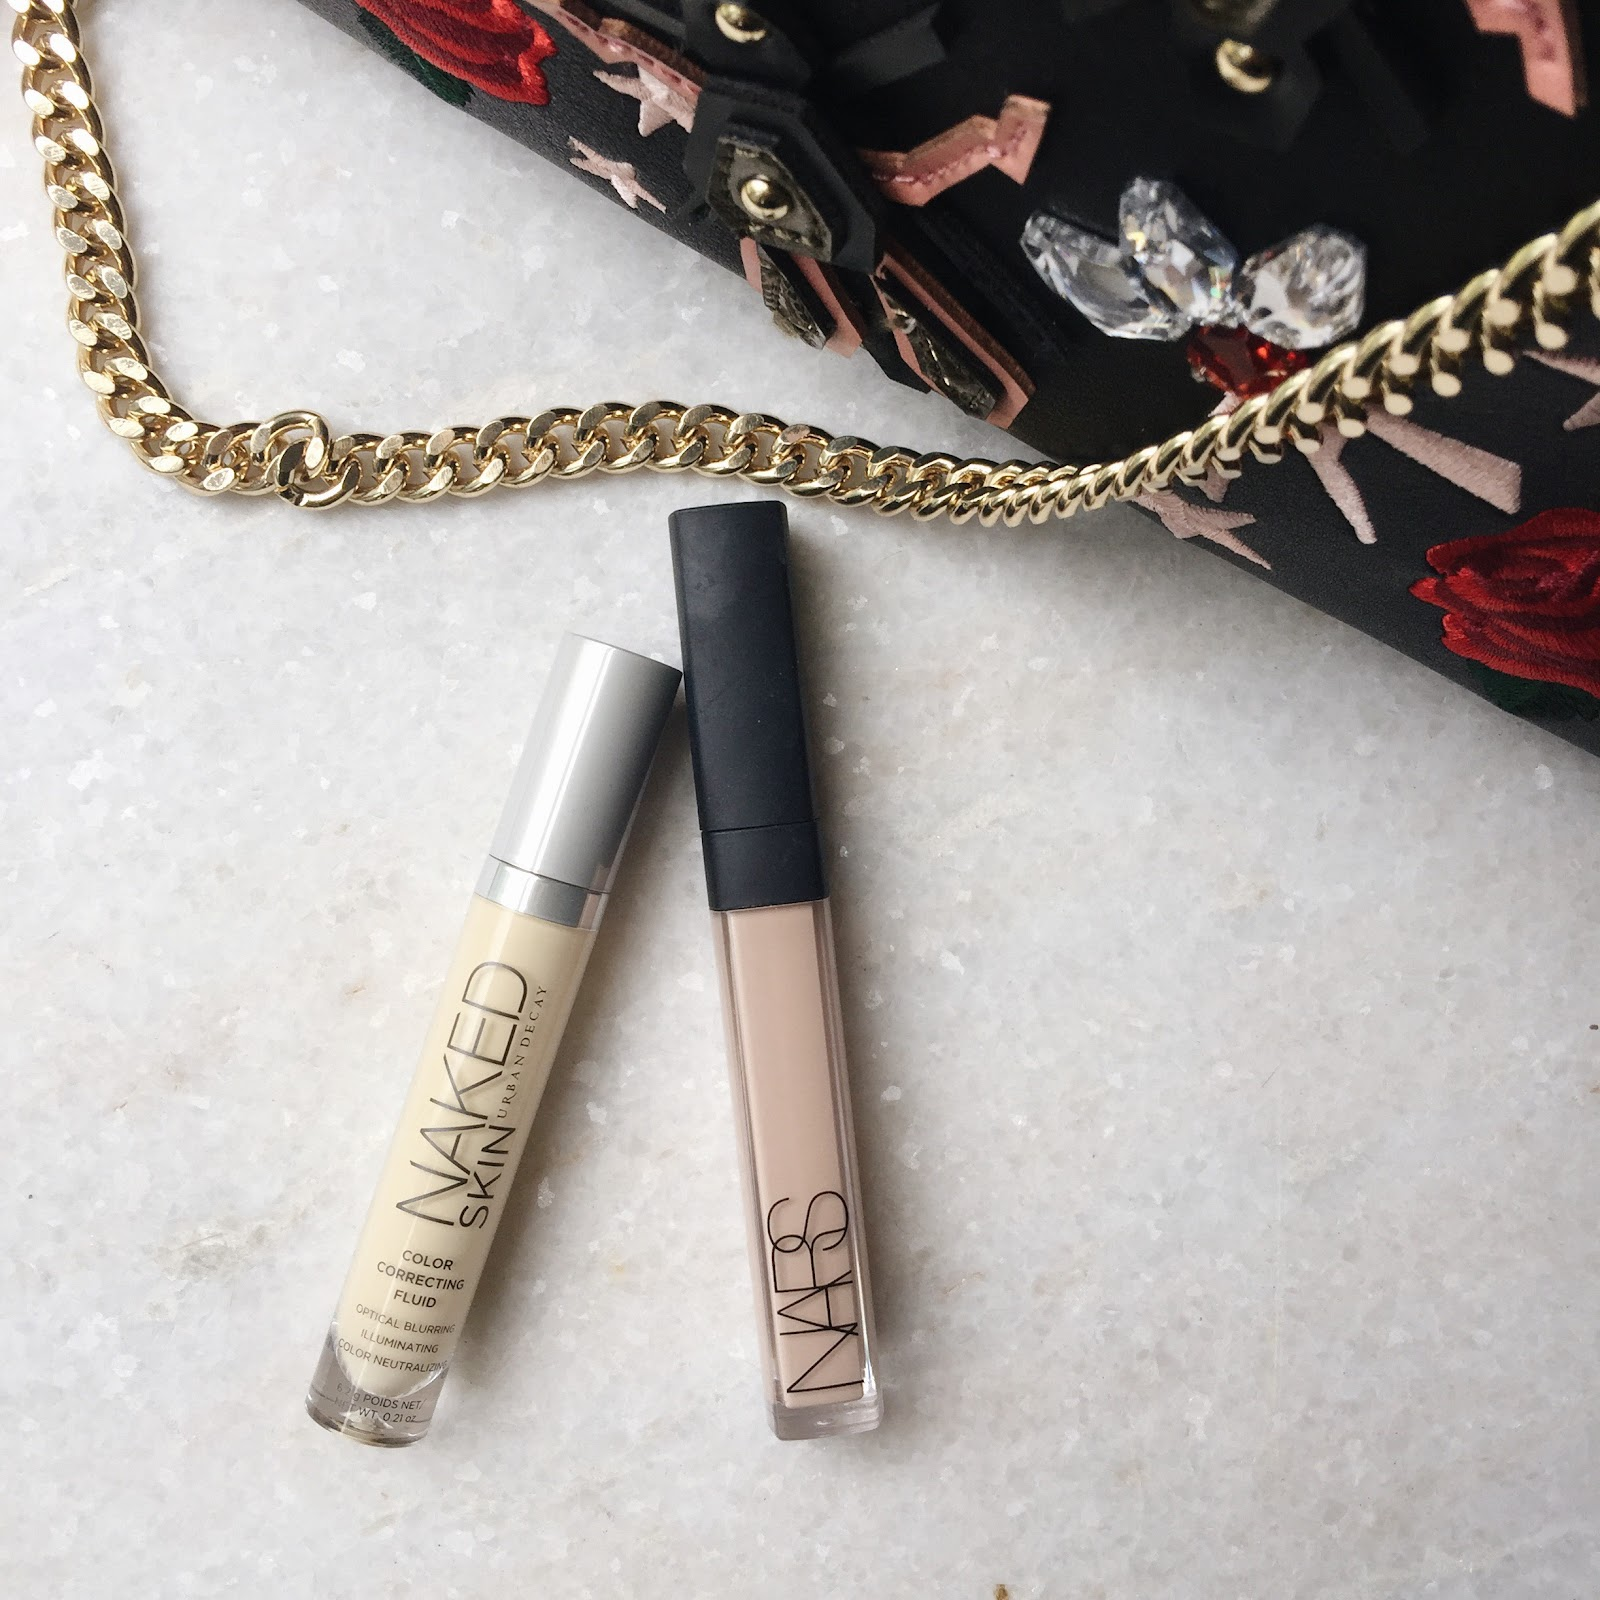 Products that cover dark circles | Urban Decay color corrector and NARS radiant creamy concealer